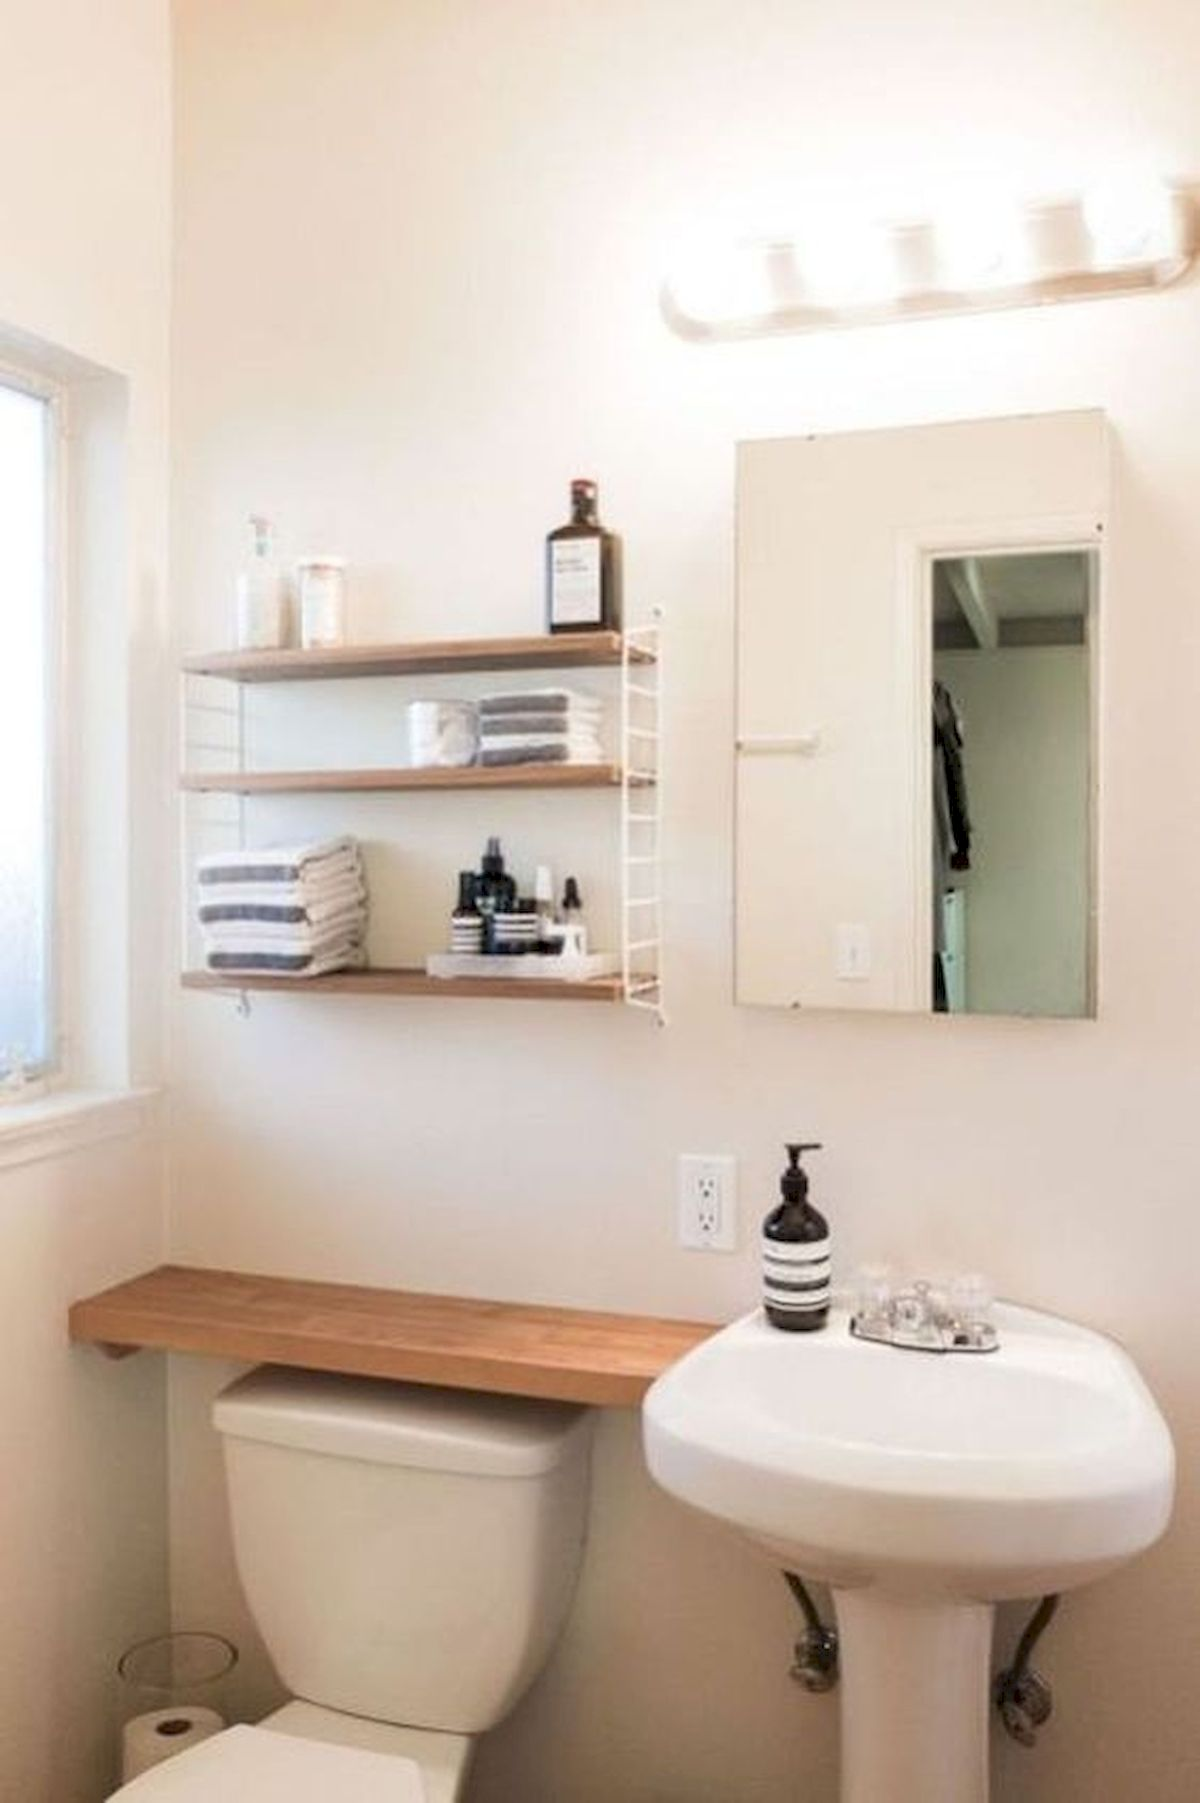 50 Best DIY Storage Design Ideas to Maximize Your Small Bathroom Space (39)